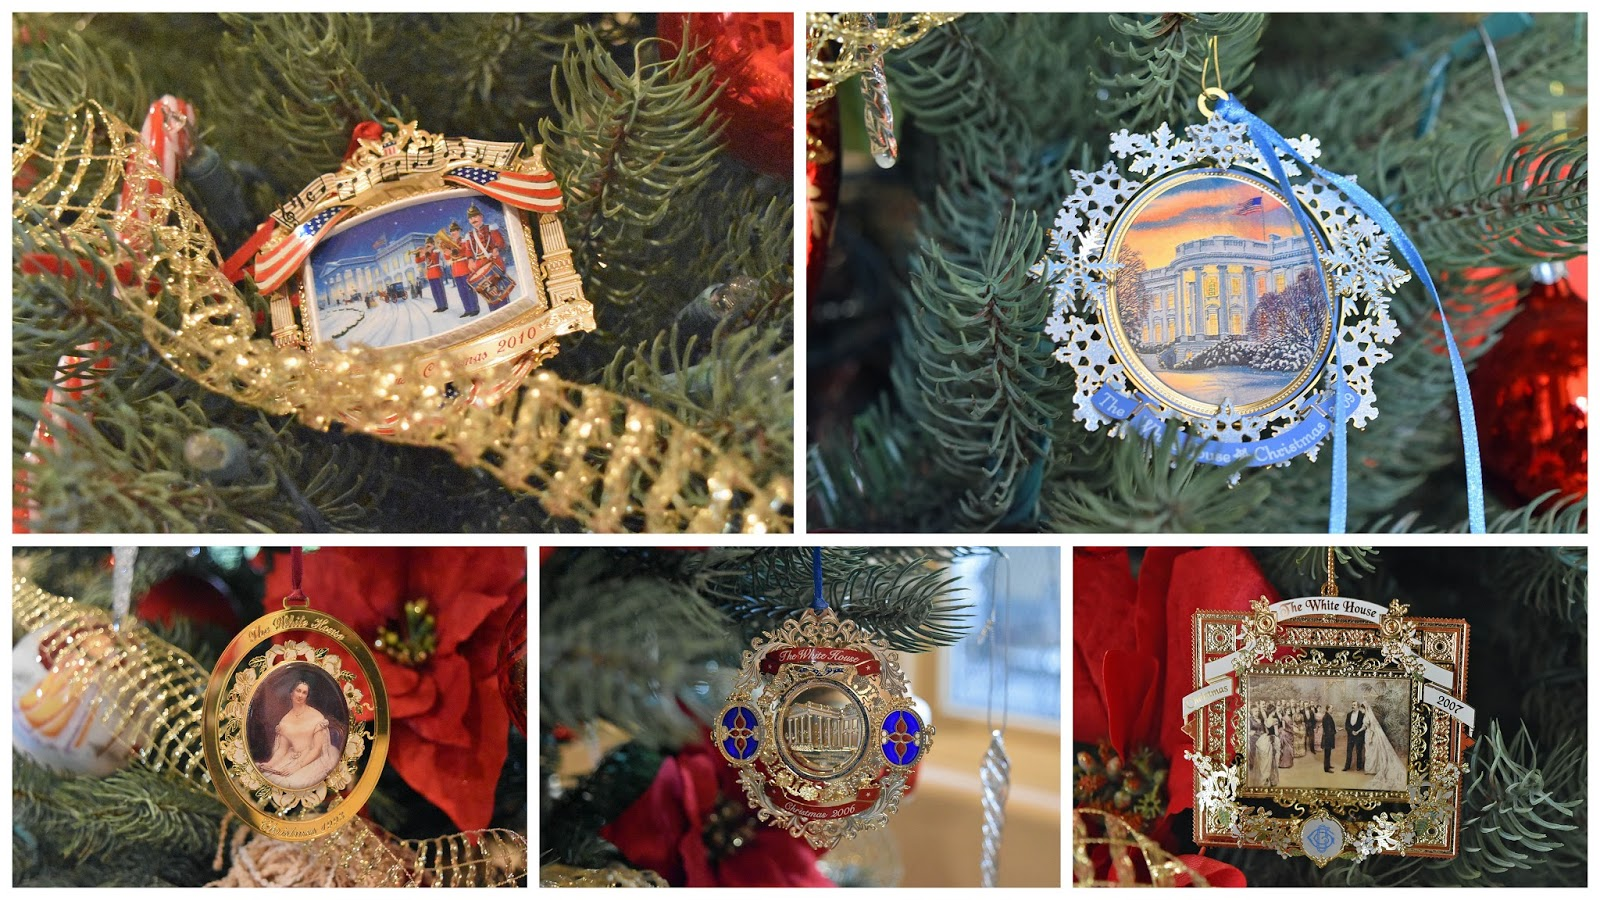 White house christmas ornaments by year - Thank You Linda For Generously Sending Ornaments Each Year It Is Fun To Have A Christmas Ornament Collection That Celebrates The Season And Shares Our